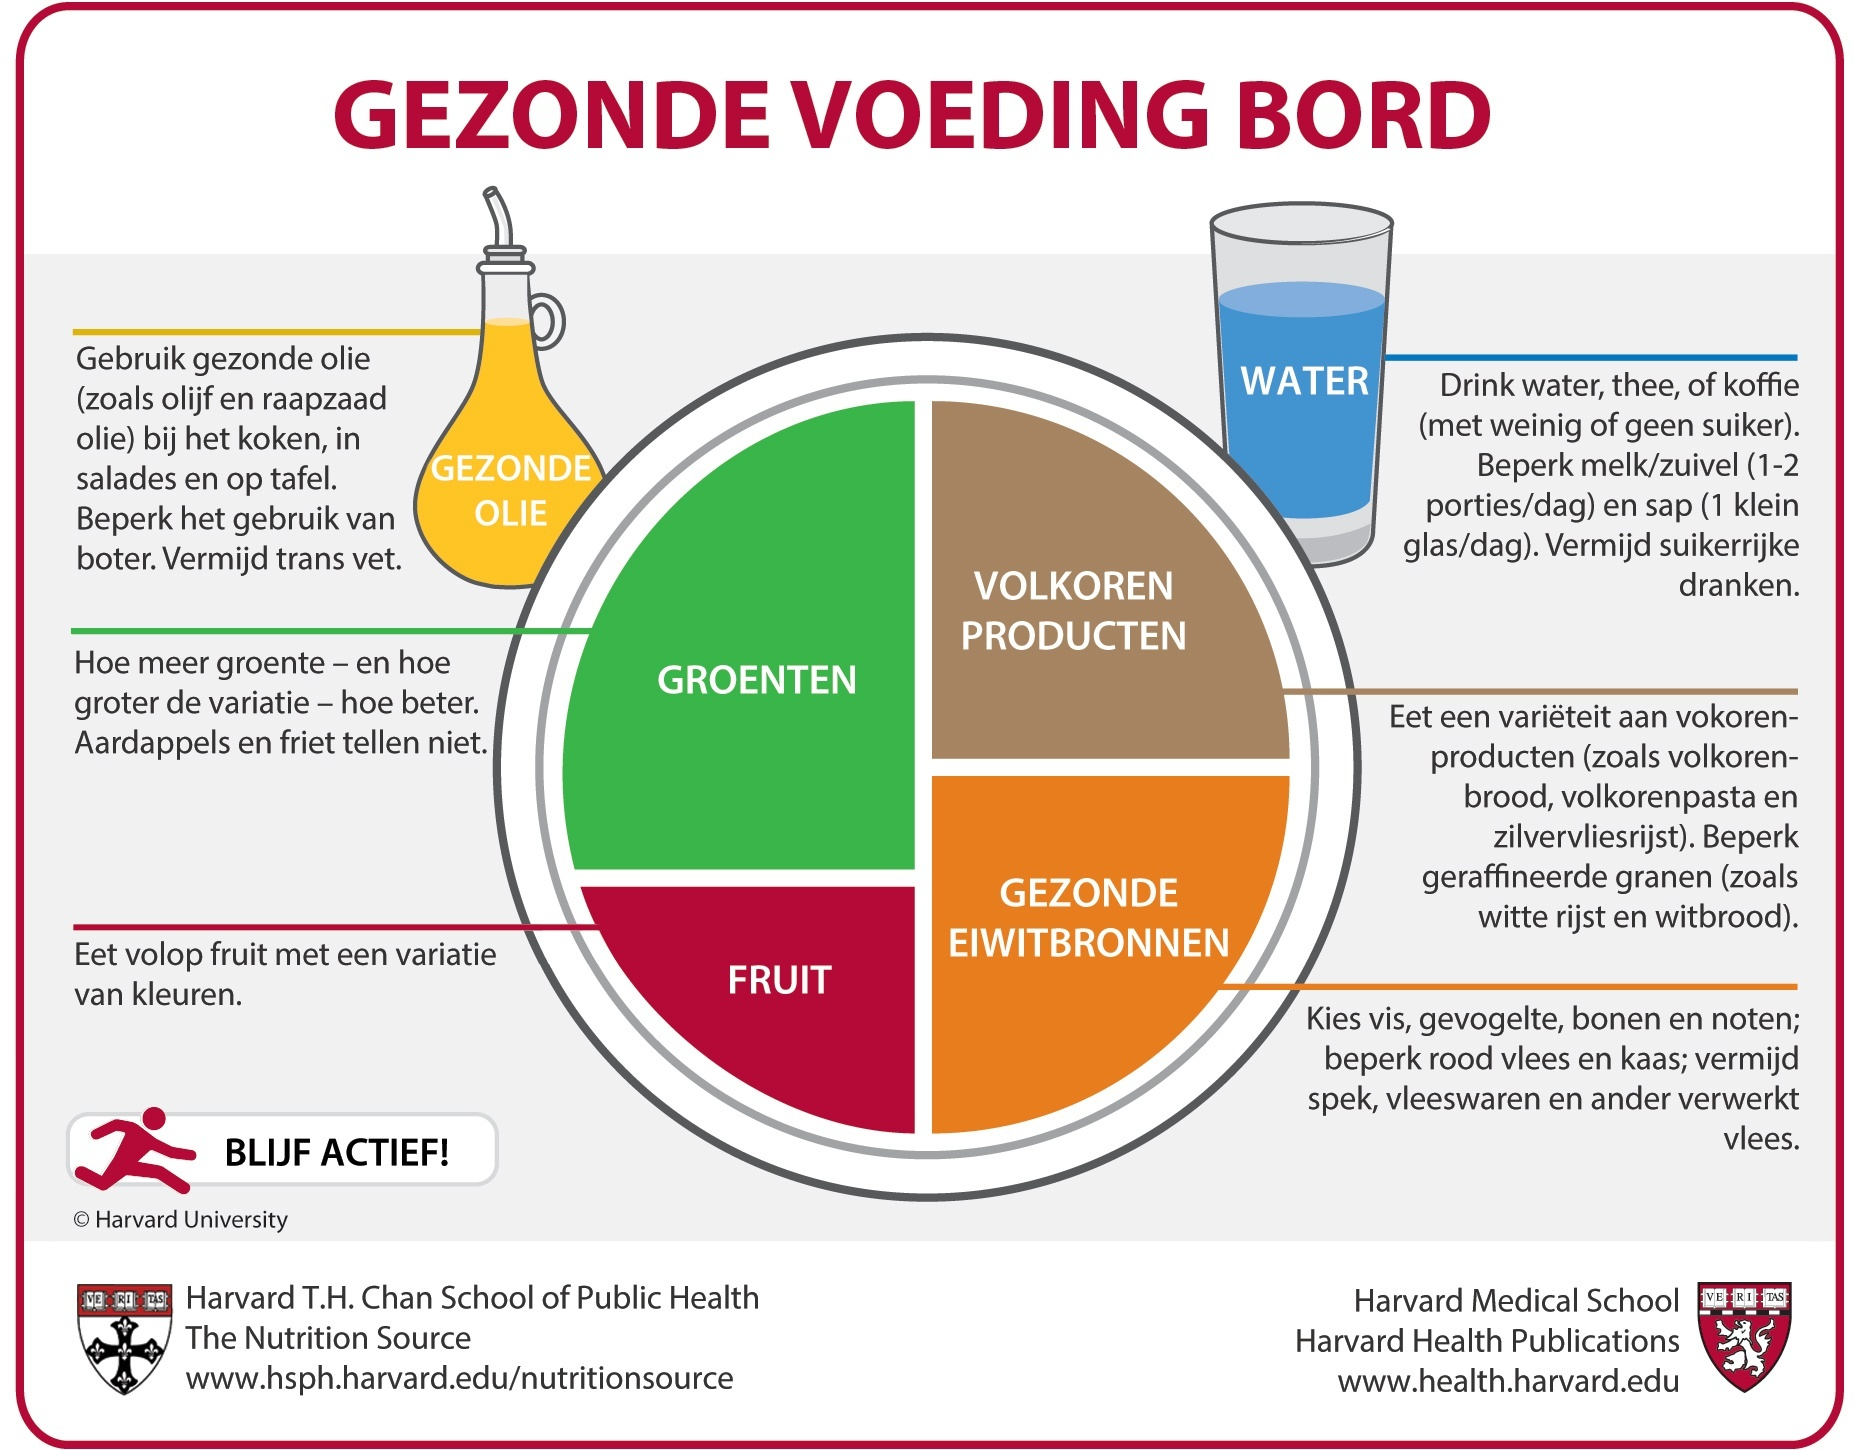 Beroemd Gezonde Voeding Bord (Dutch) | The Nutrition Source | Harvard T.H.  @VE74